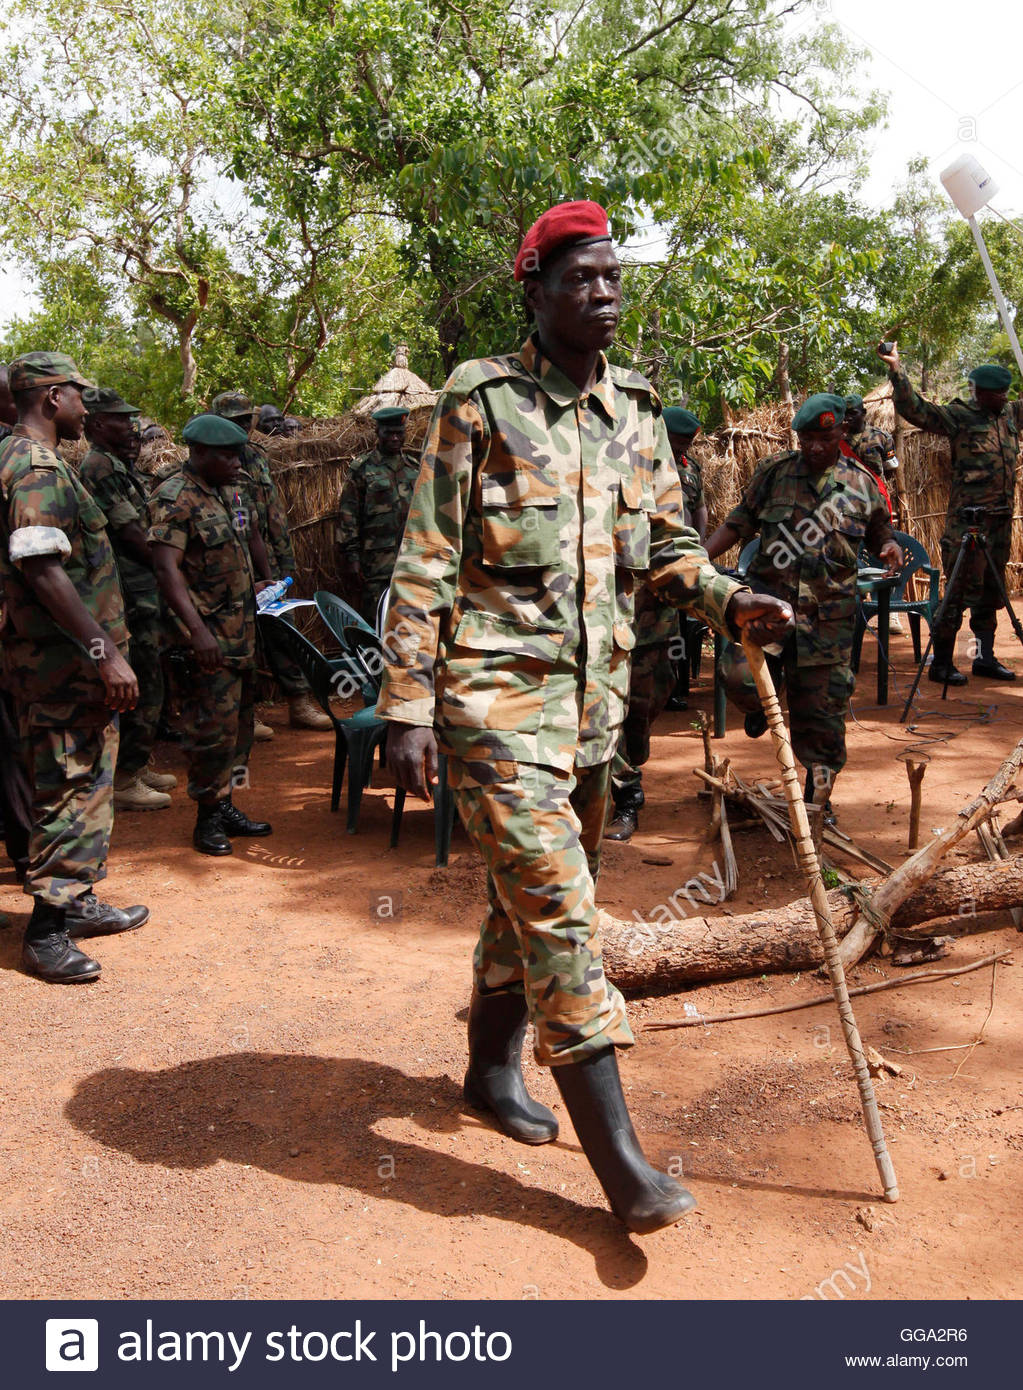 lord s resistance army and ugandan army Introduction since 1987, the lord's resistance army (lra), a violent rebel group headed by joseph kony, has been terrorizing the population of northern uganda and the neighboring countries of the democratic republic of the congo (drc), central african republic (car), and southern sudan.